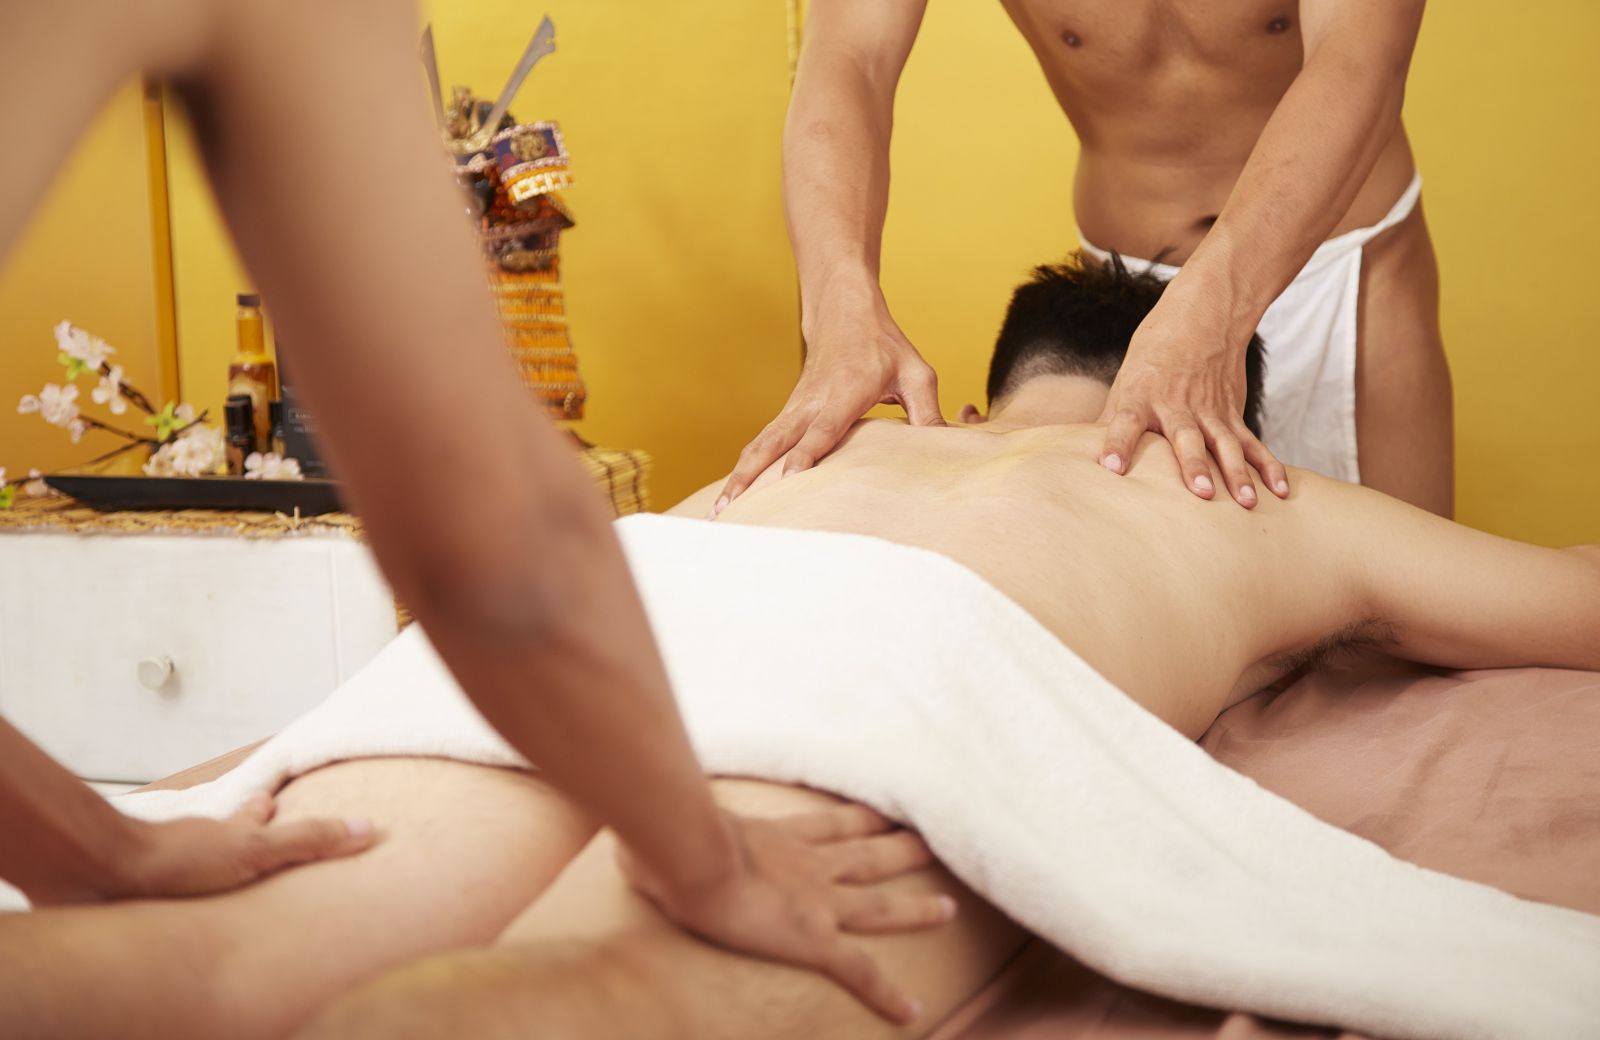 pan thai massage thai charda